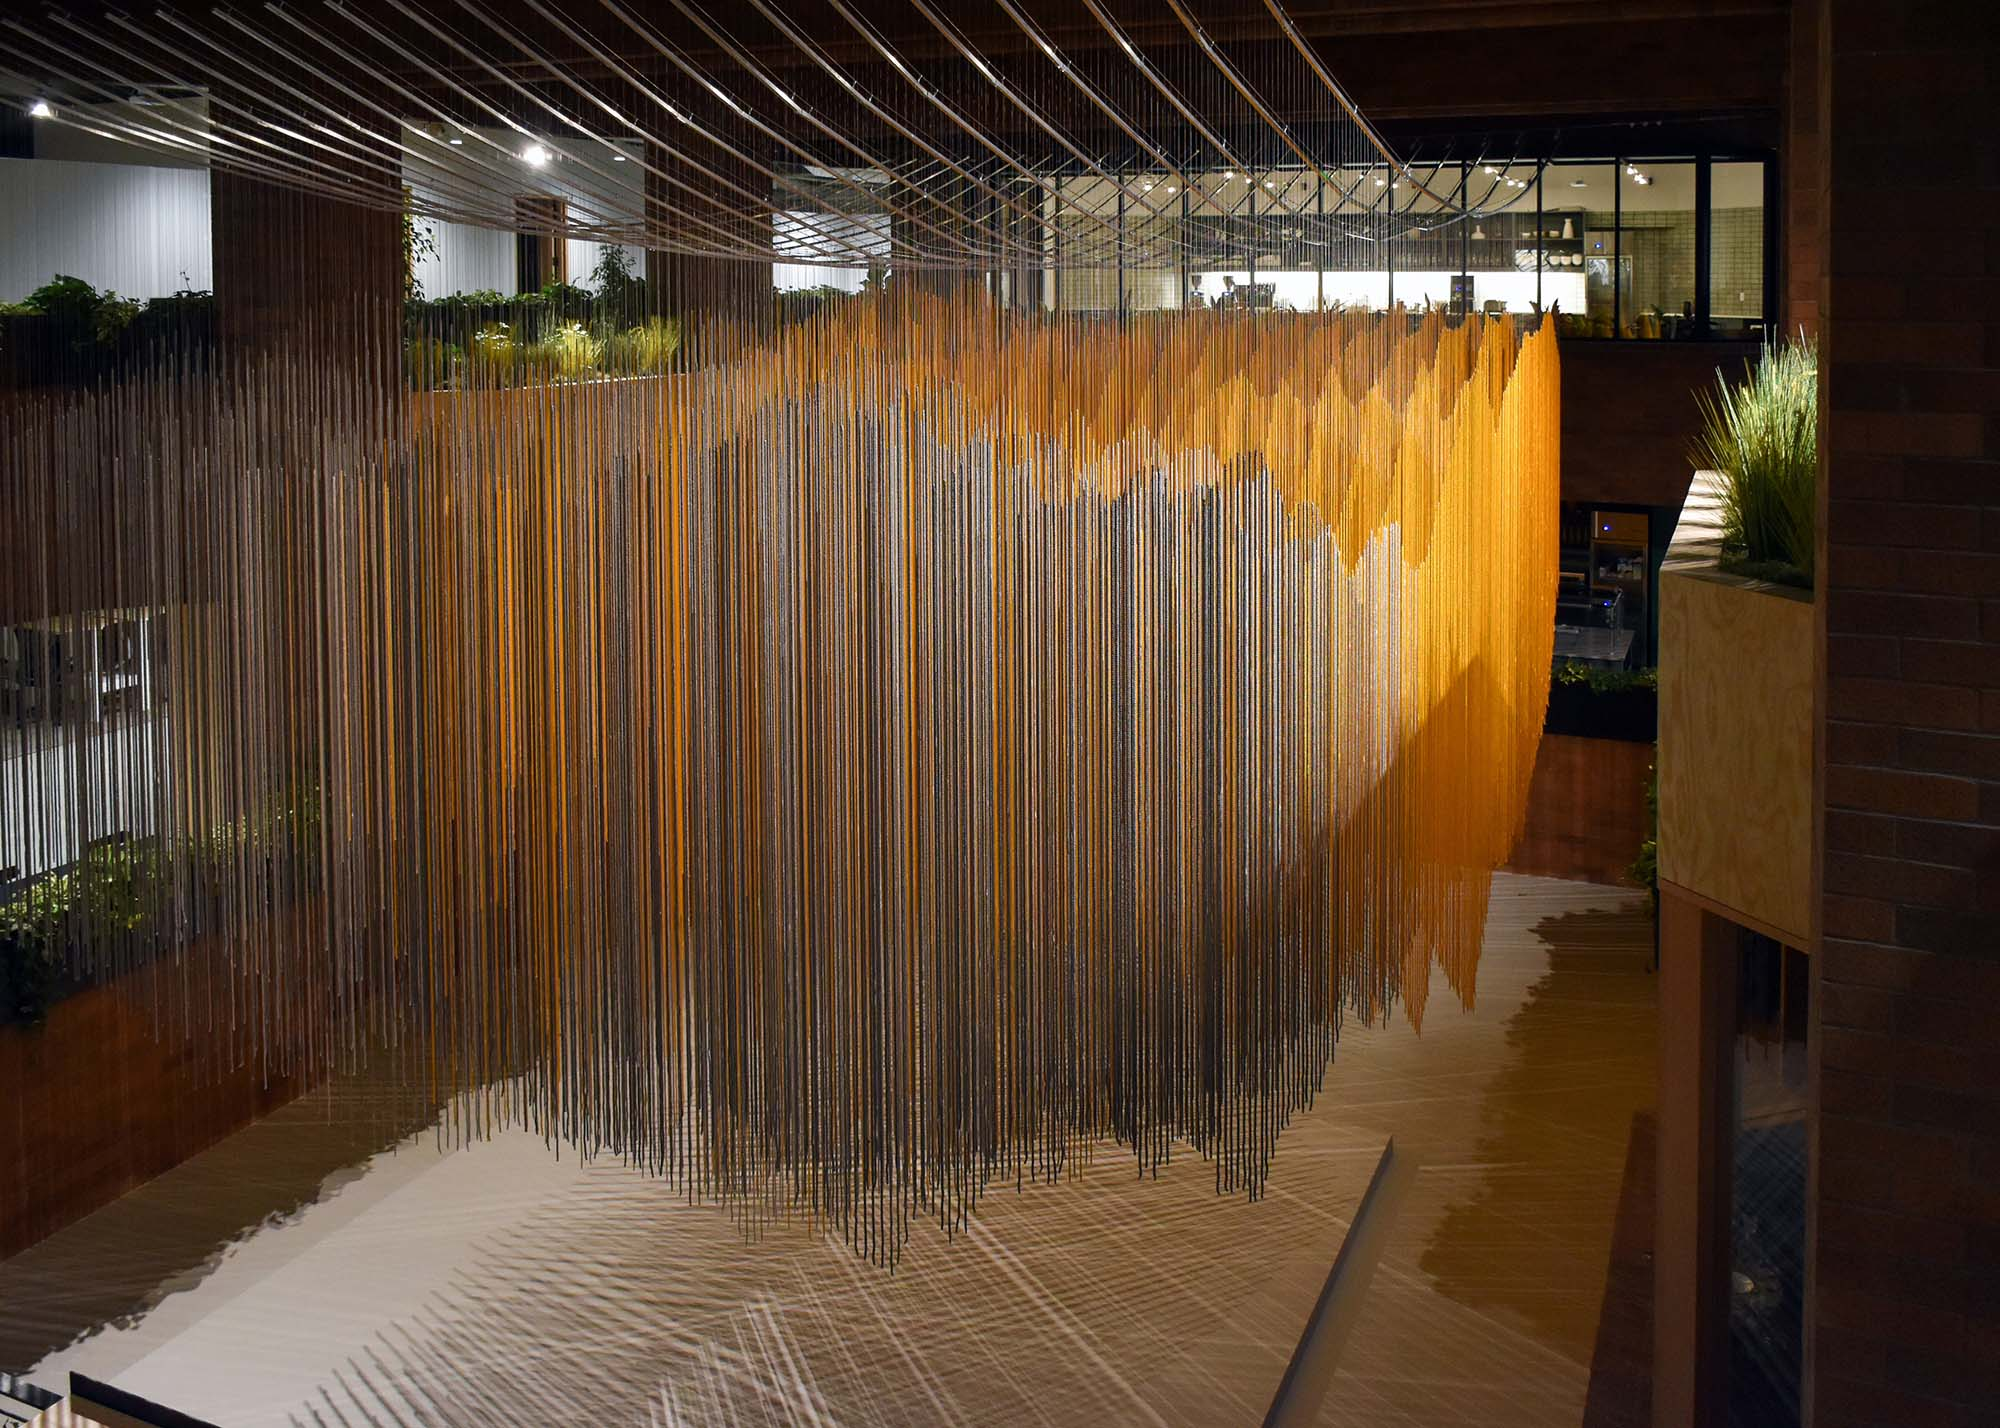 Rachel Mica Weiss, Reflected Topographies (Mount Rainier National Park). 2018. Dyed nylon rope, stainless steel cable, aluminum. Site Specific Installation. 20' x 36' x 22'.